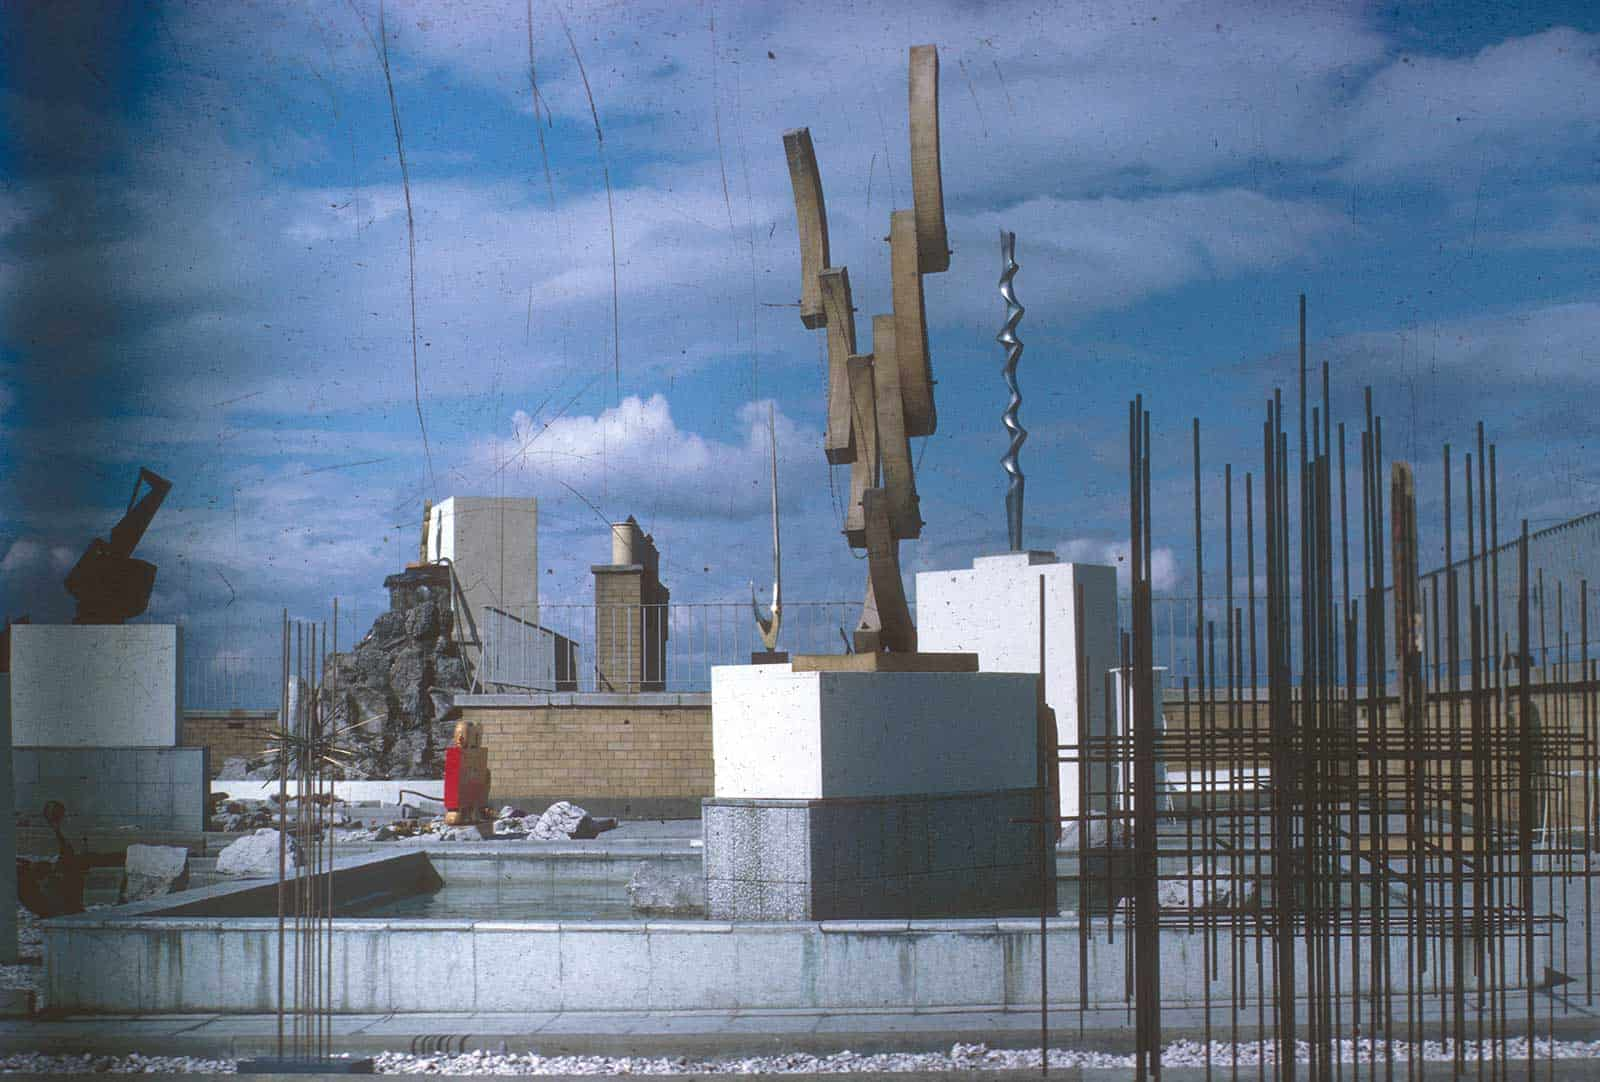 Richard Demarco, «Open Air Sculpture», 1967. Nella foto si vede il lavoro di Denis Mitchell, Edgar Negret e Julian Snelling. Courtesy of Demarco European Art Foundation & Demarco Digital Archive, University of Dundee